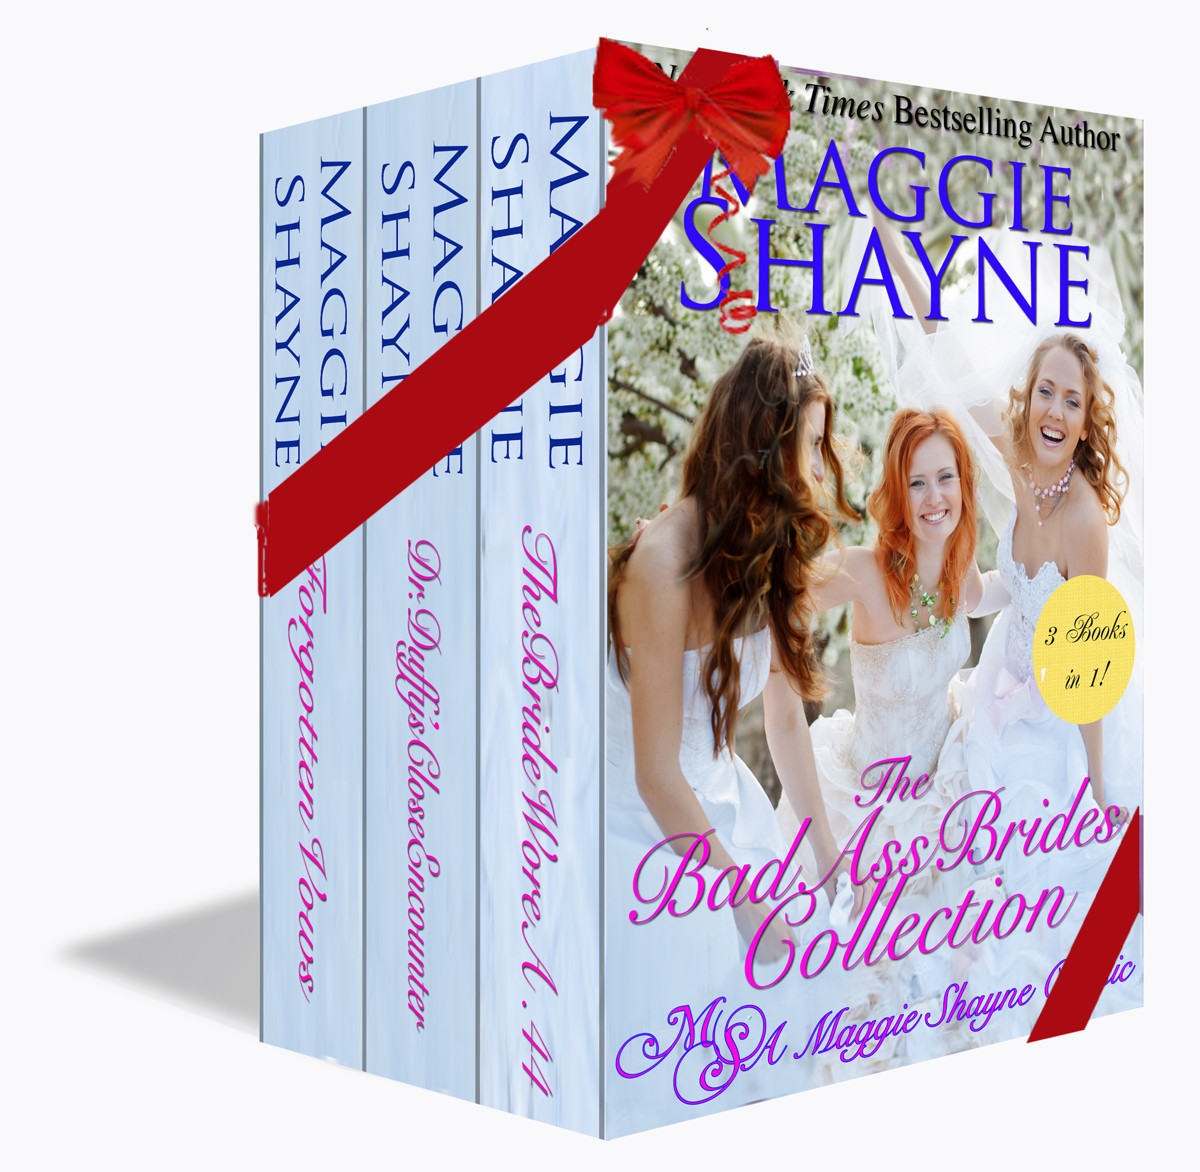 The Kobo Starter Pack: The Bad Ass Brides Collection By: Maggie Shayne